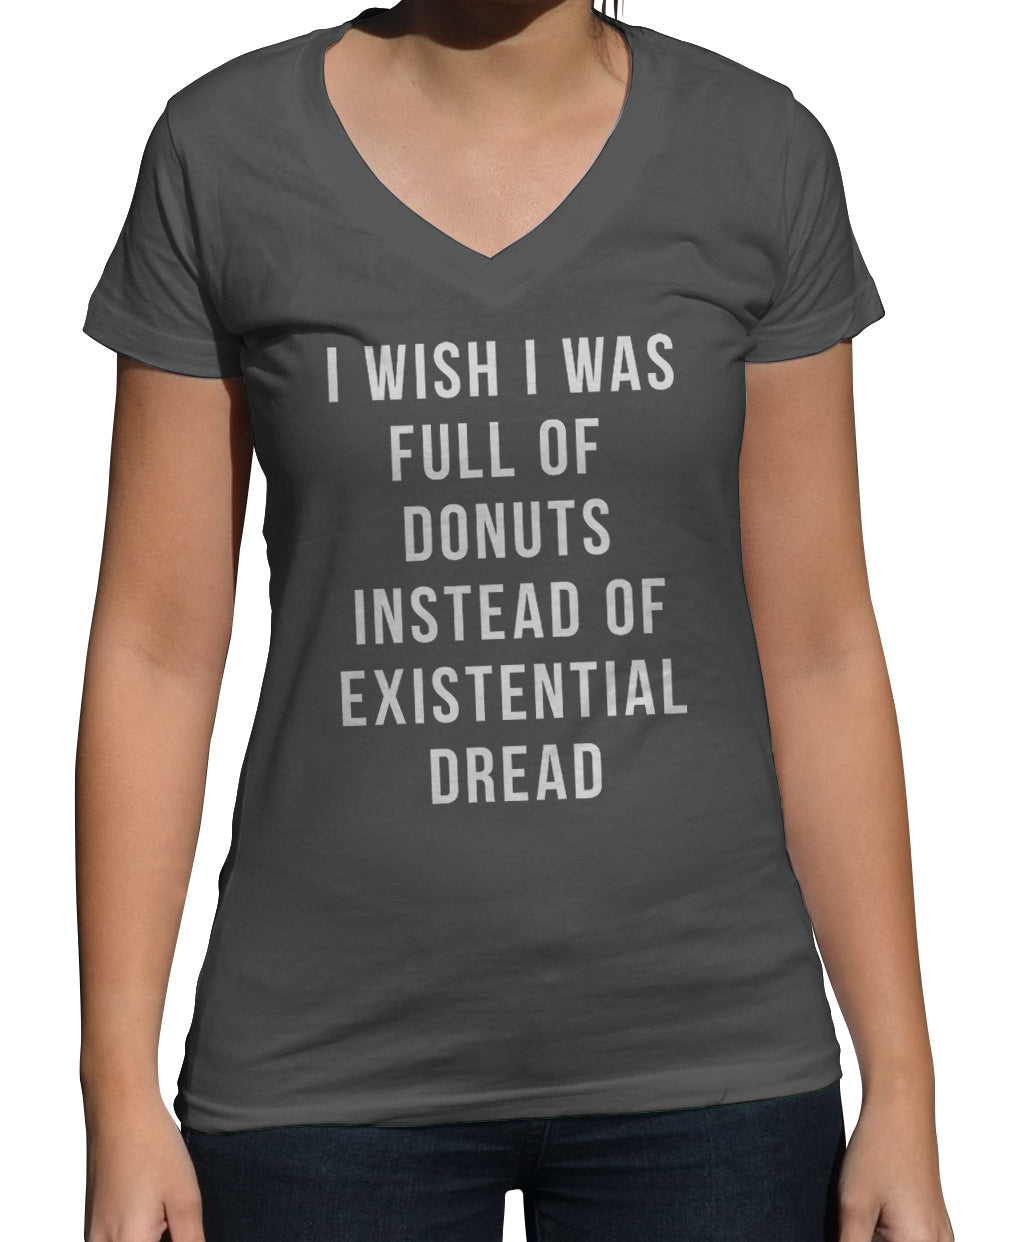 Women's I Wish I Was Full of Donuts Instead of Existential Dread Vneck T-Shirt